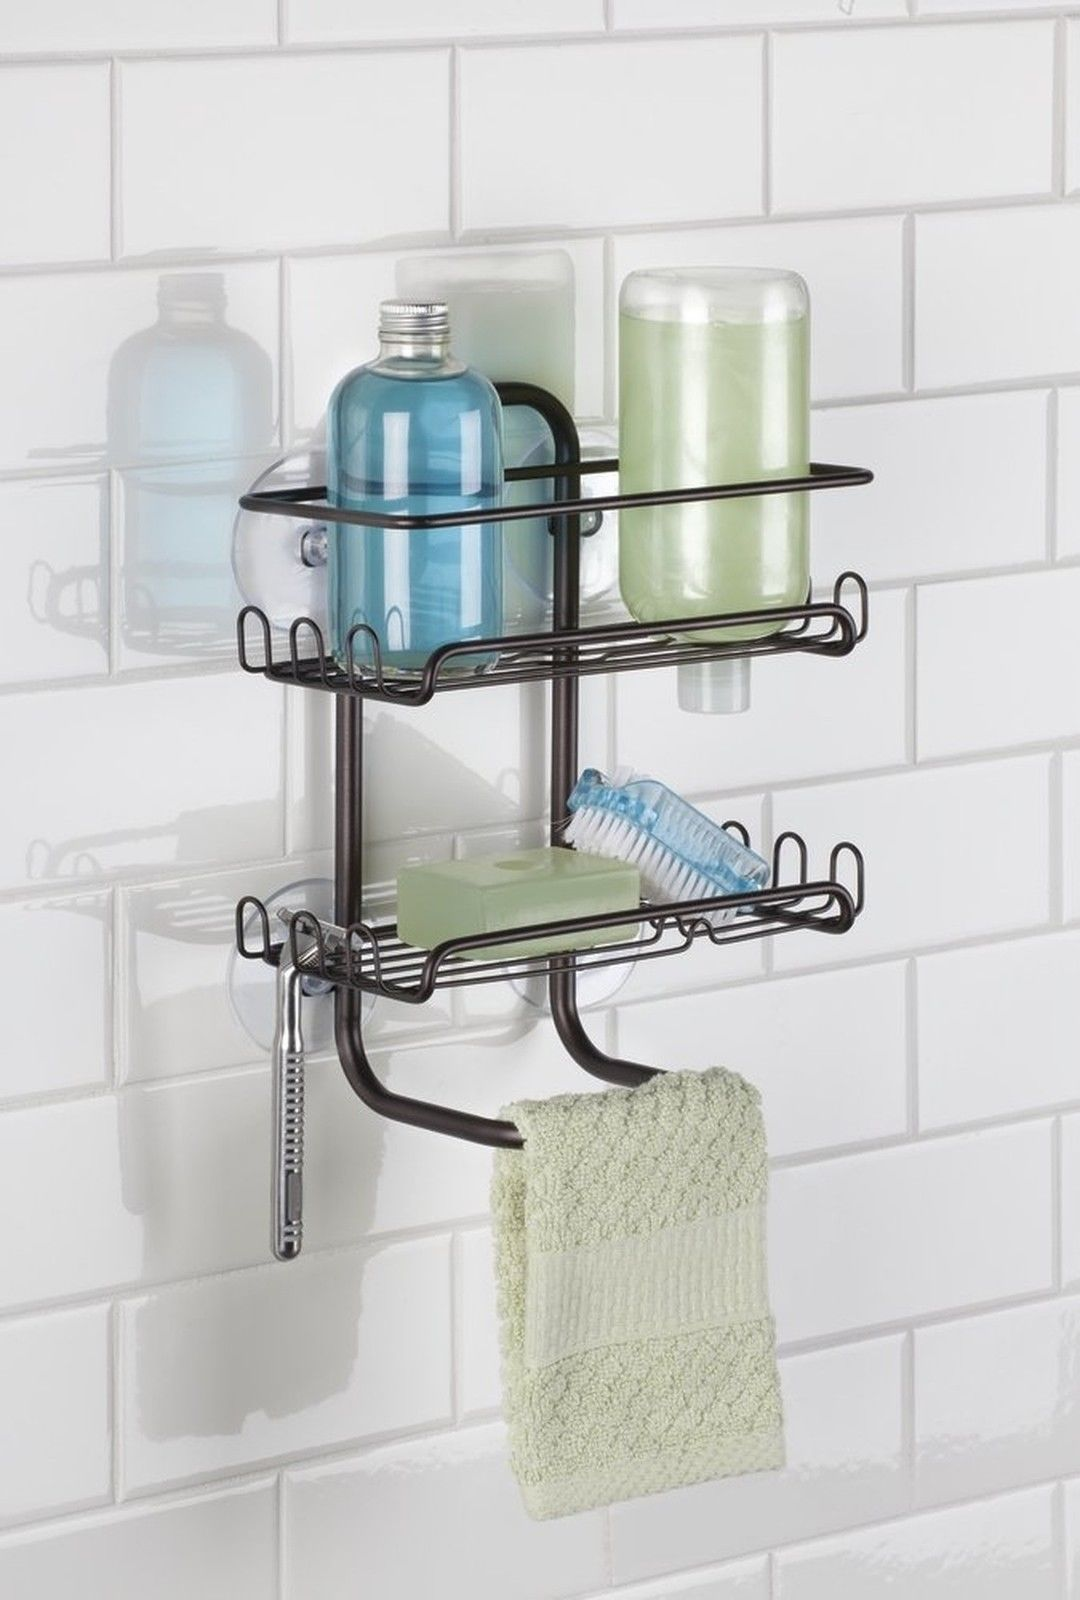 Shelves For Shampoo And Soaps Hooks On Both Sides To Hang Razors And Accessories Hanging Storage Shelves Shower Shelves Shower Remodel